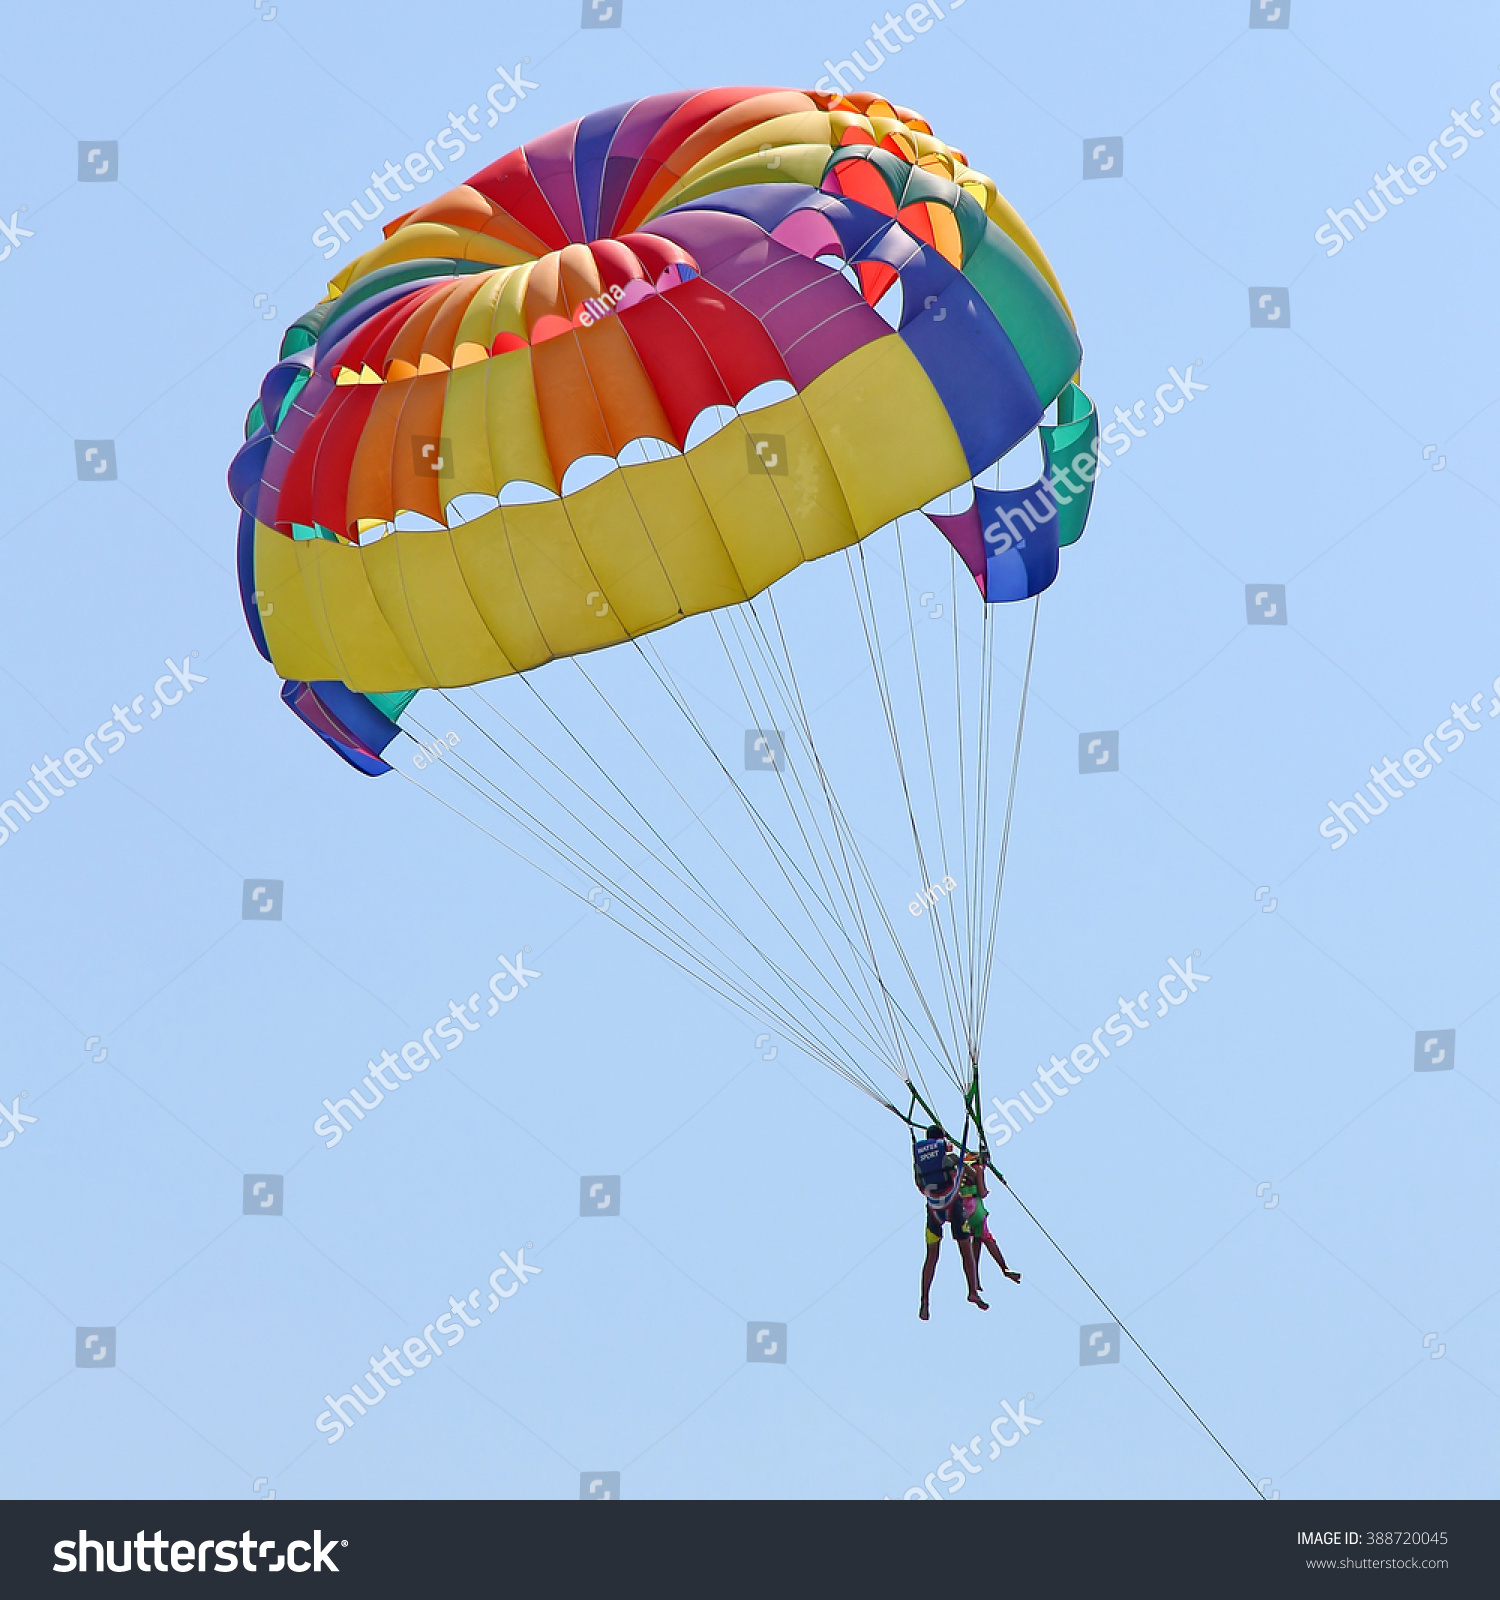 KEMER TURKEY AUGUST 18 2015 Parasailing in a blue sky near sea beach Parasailing is a popular recreational activity among tourists in Turkey